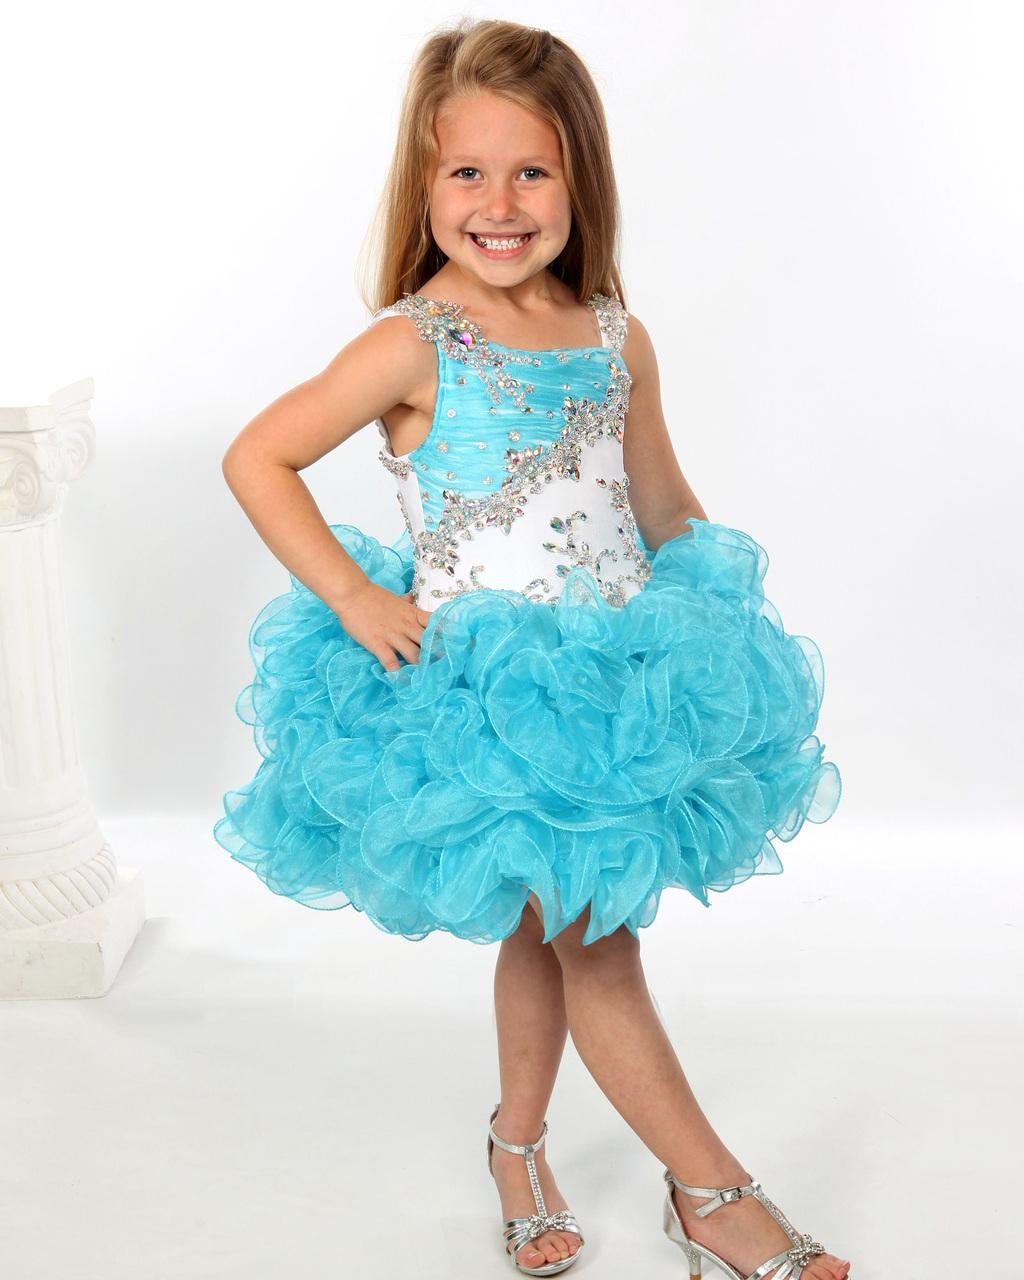 2019 Flower Girls' Dresses Newest Girls Pageant Dress Sequins Beaded Straps Ruffles Organza Cupcake Toddlers Infant Kids Short Skirts